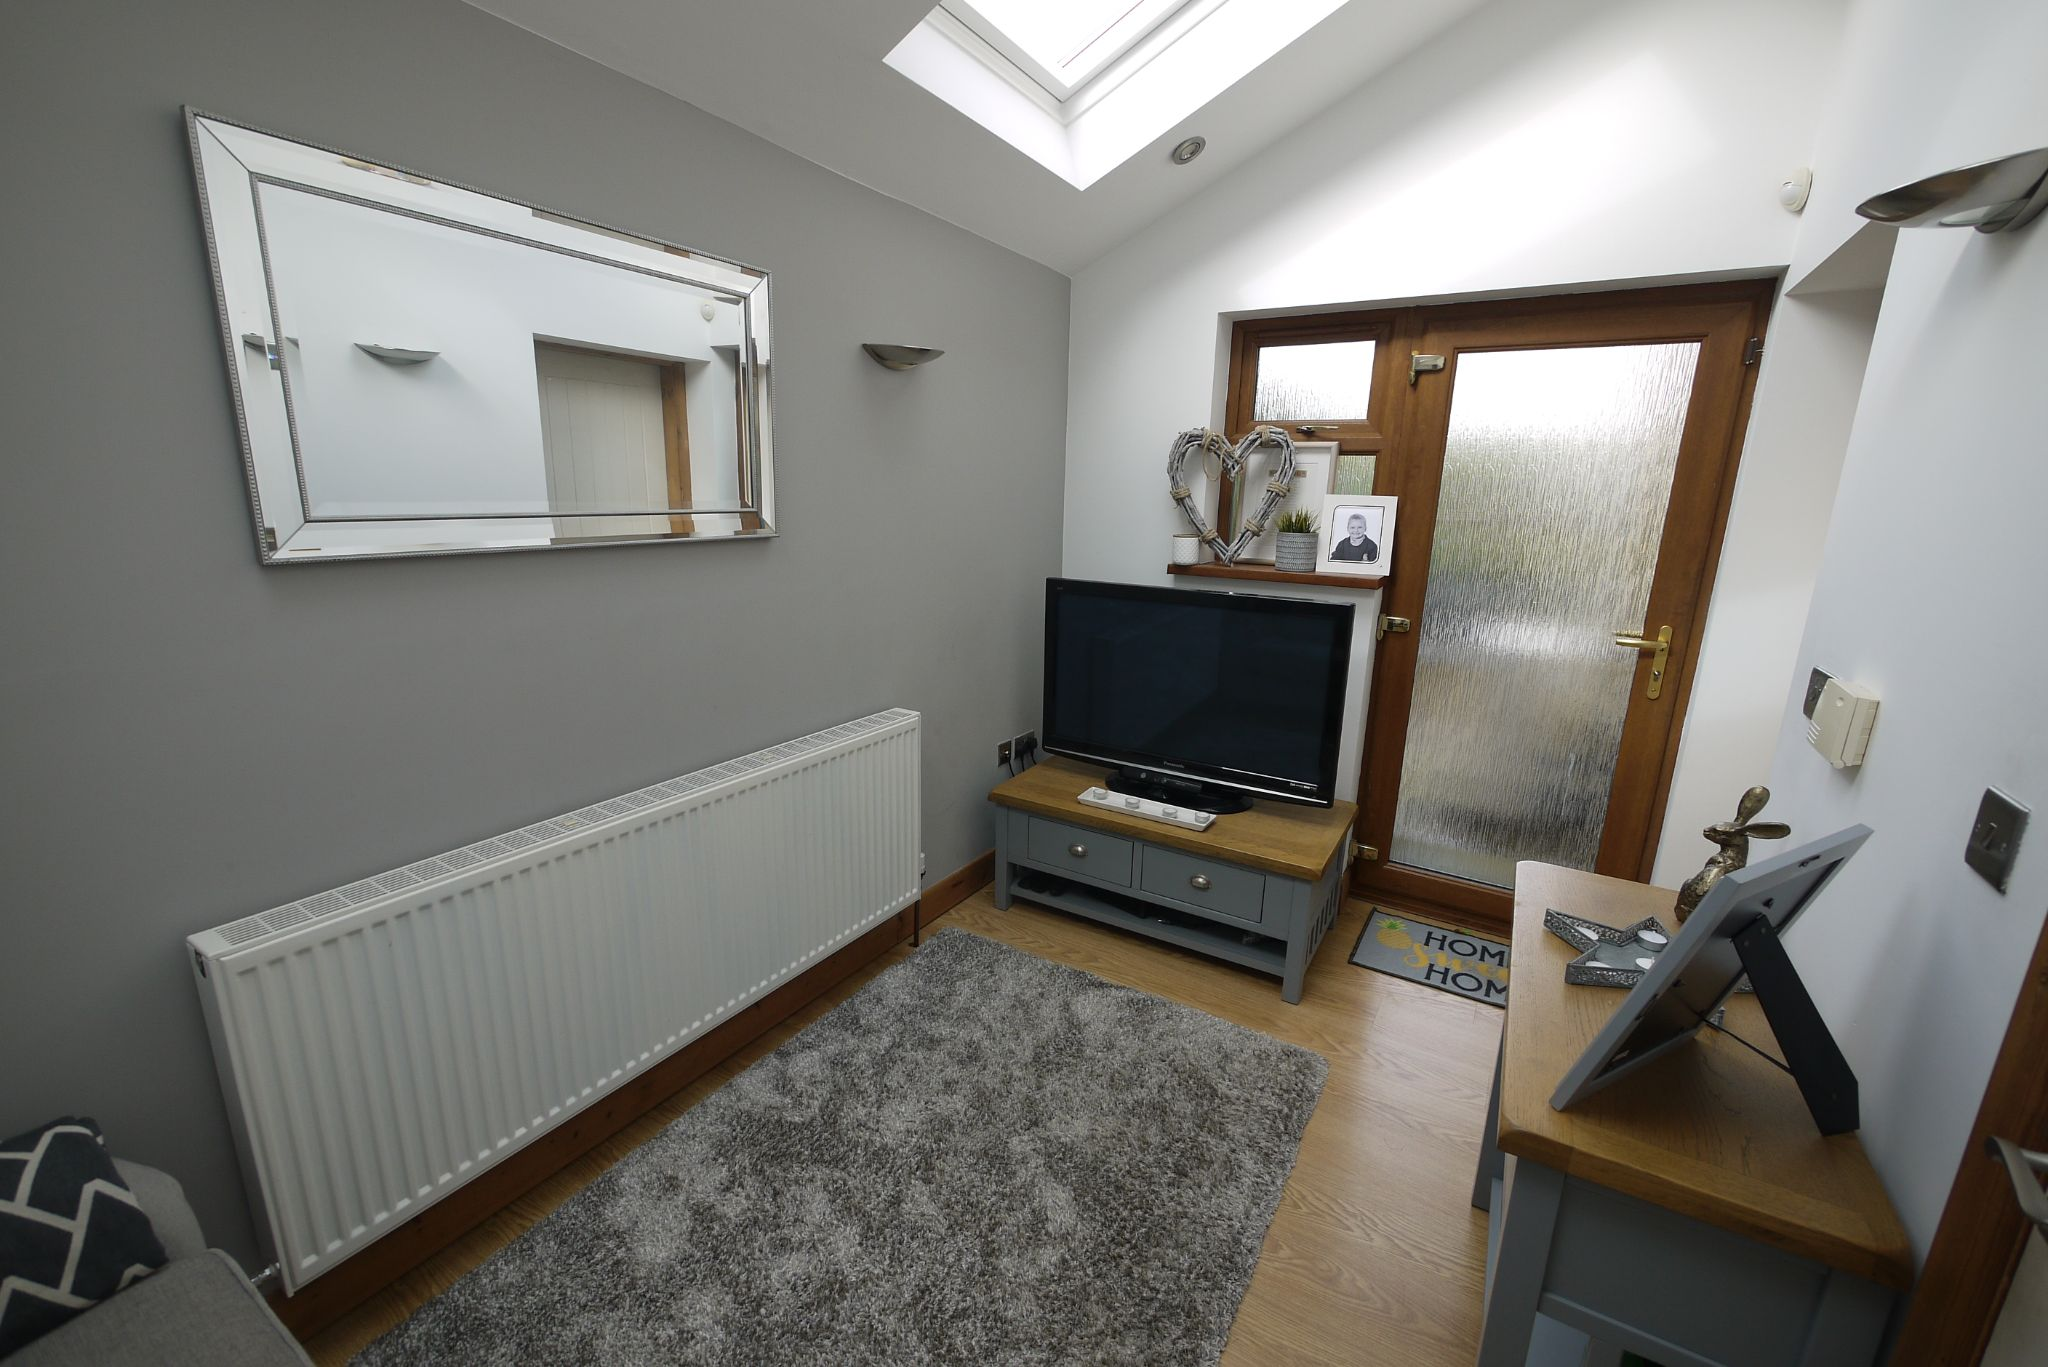 4 bedroom detached house SSTC in Brighouse - Study/Bed 4.